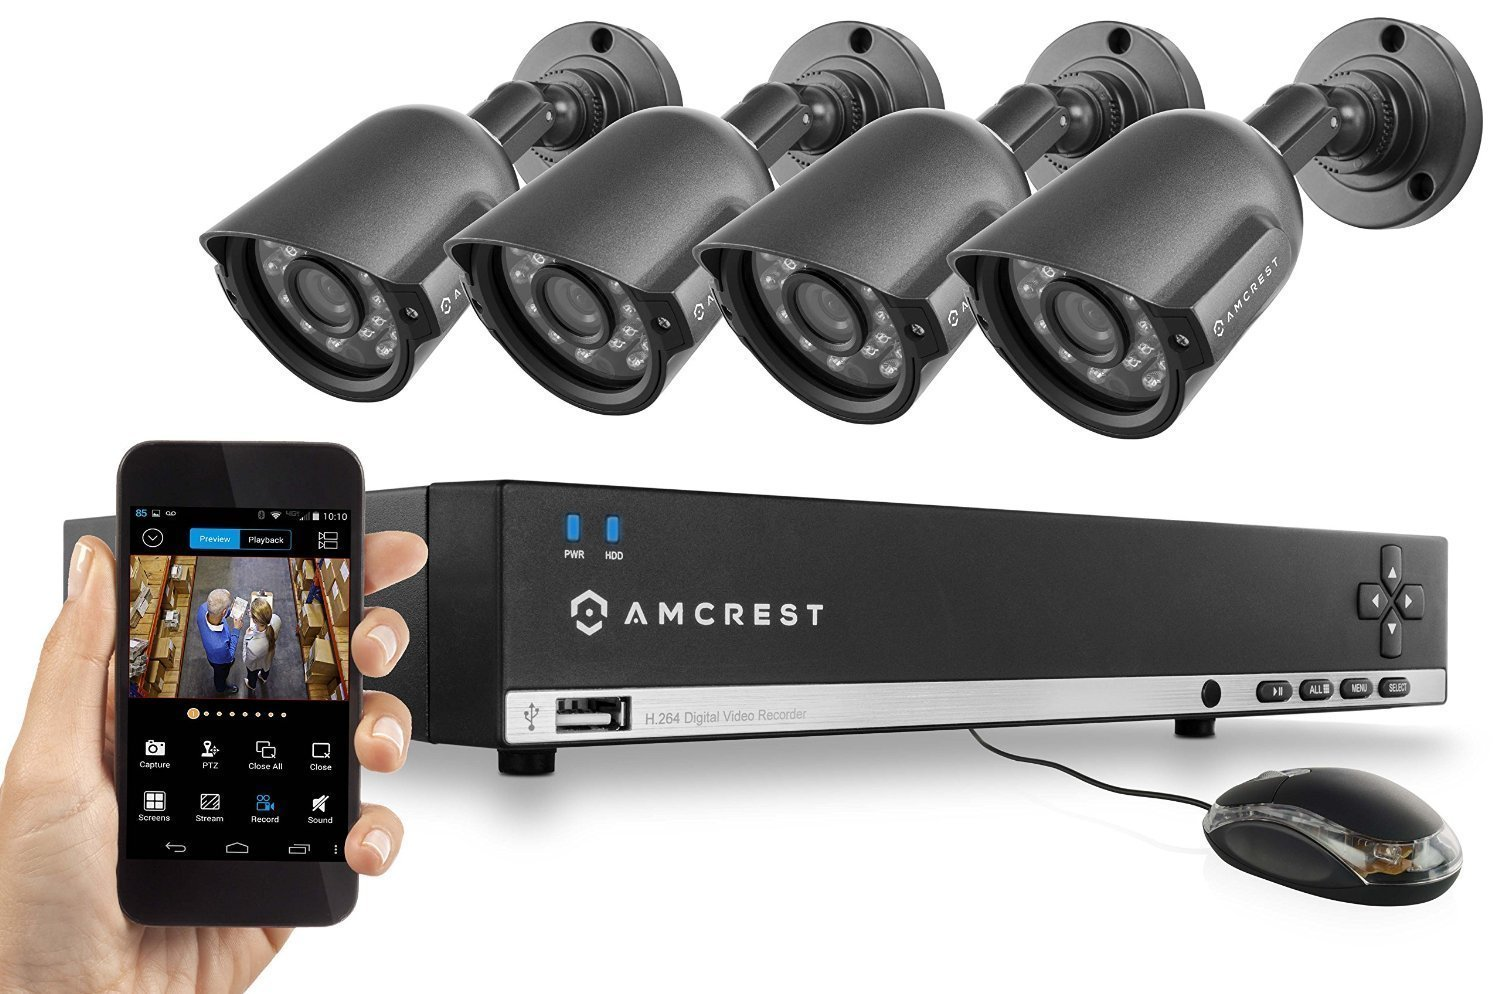 Amcrest Night Vision Video Security